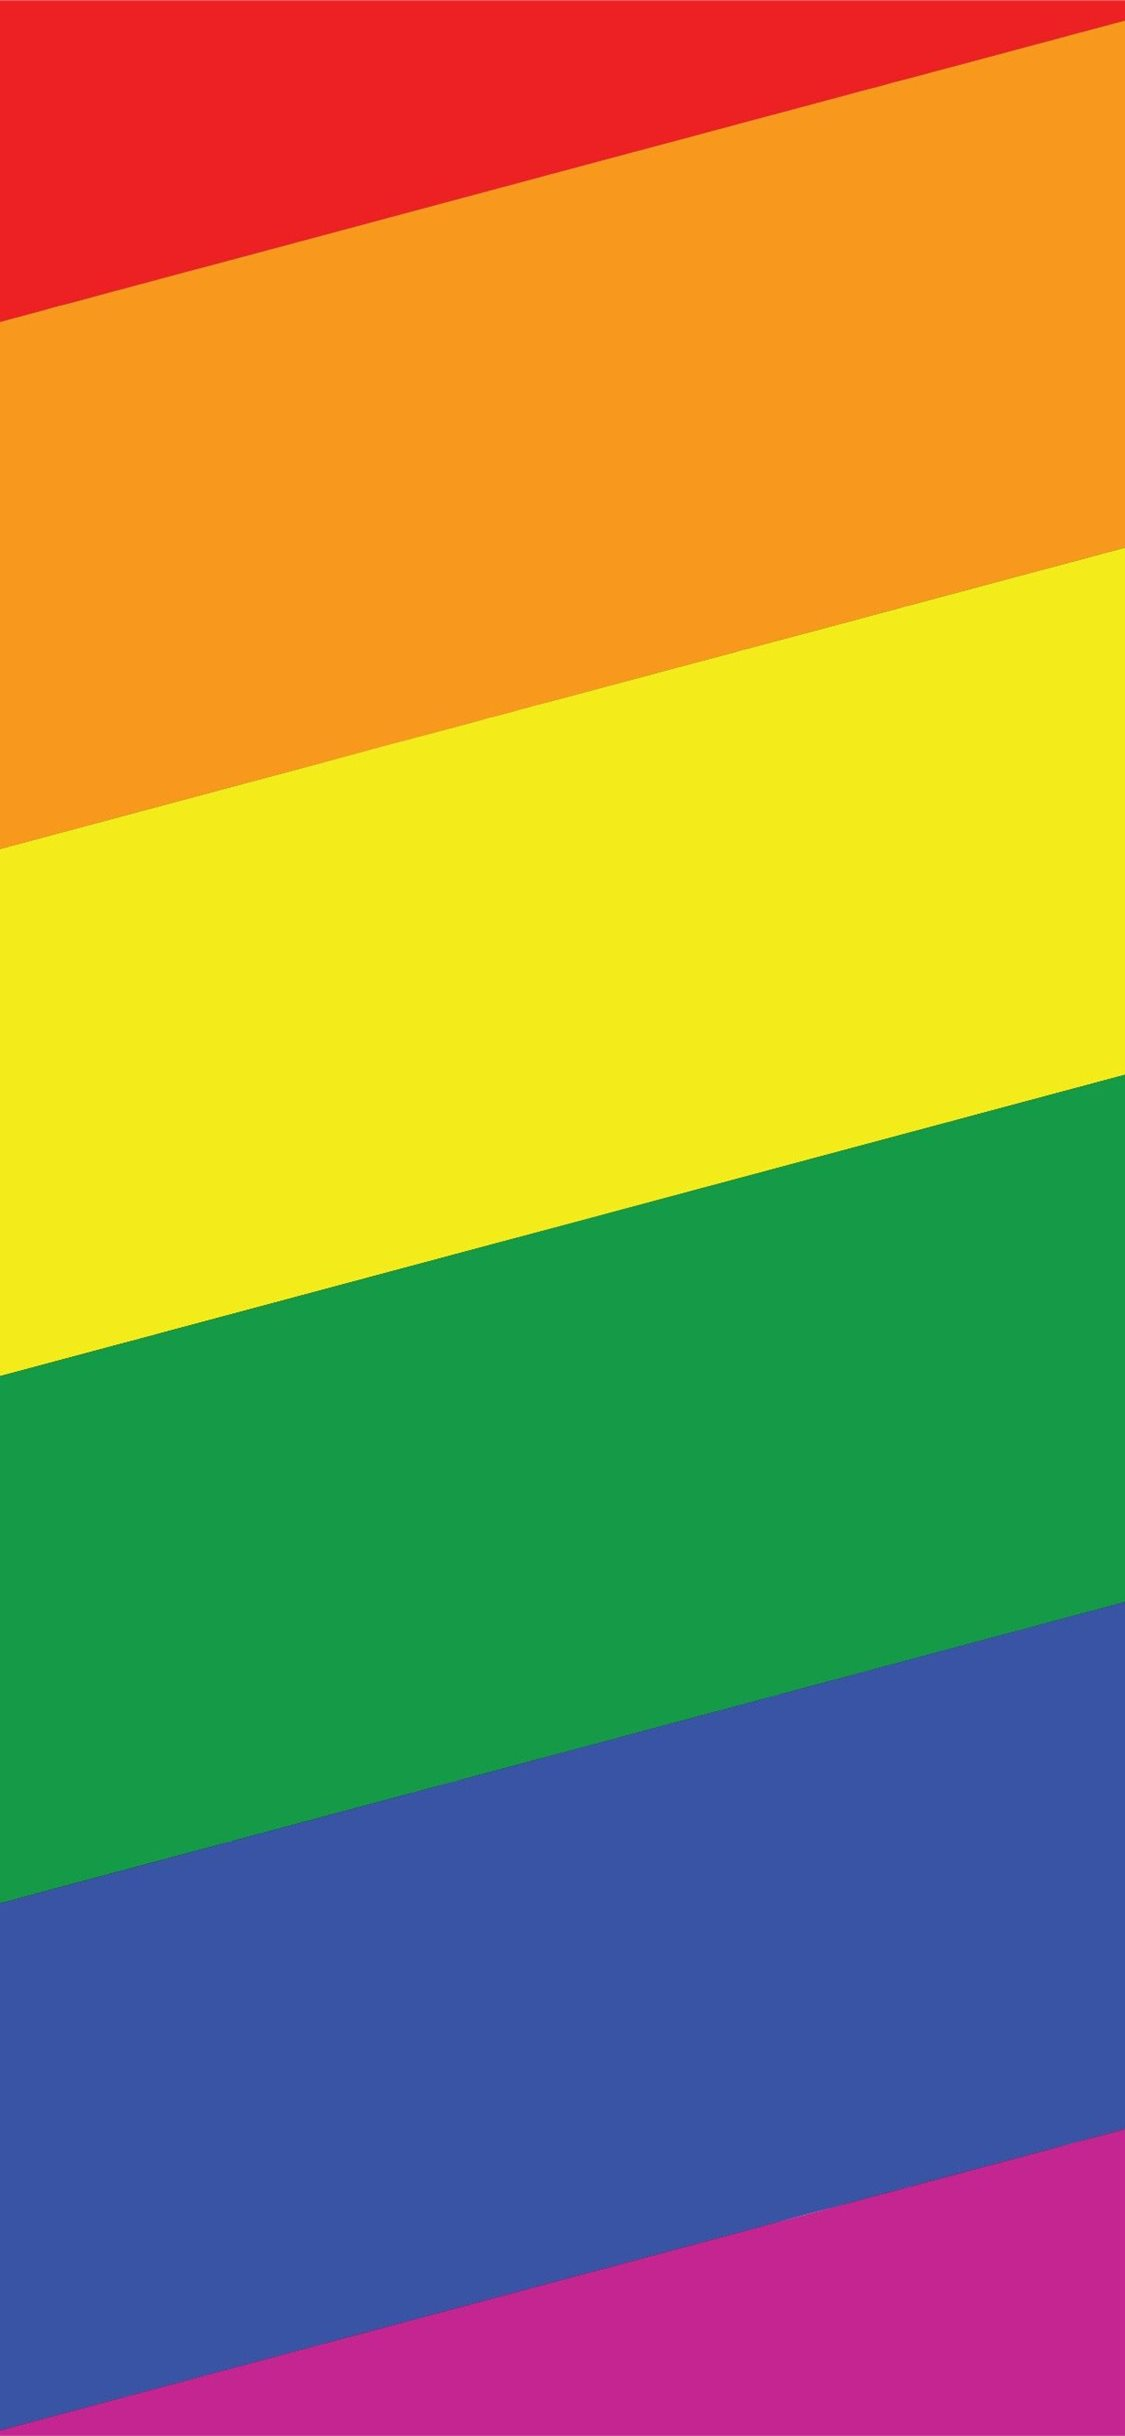 Rainbow Flag Iphone Wallpapers Free Download